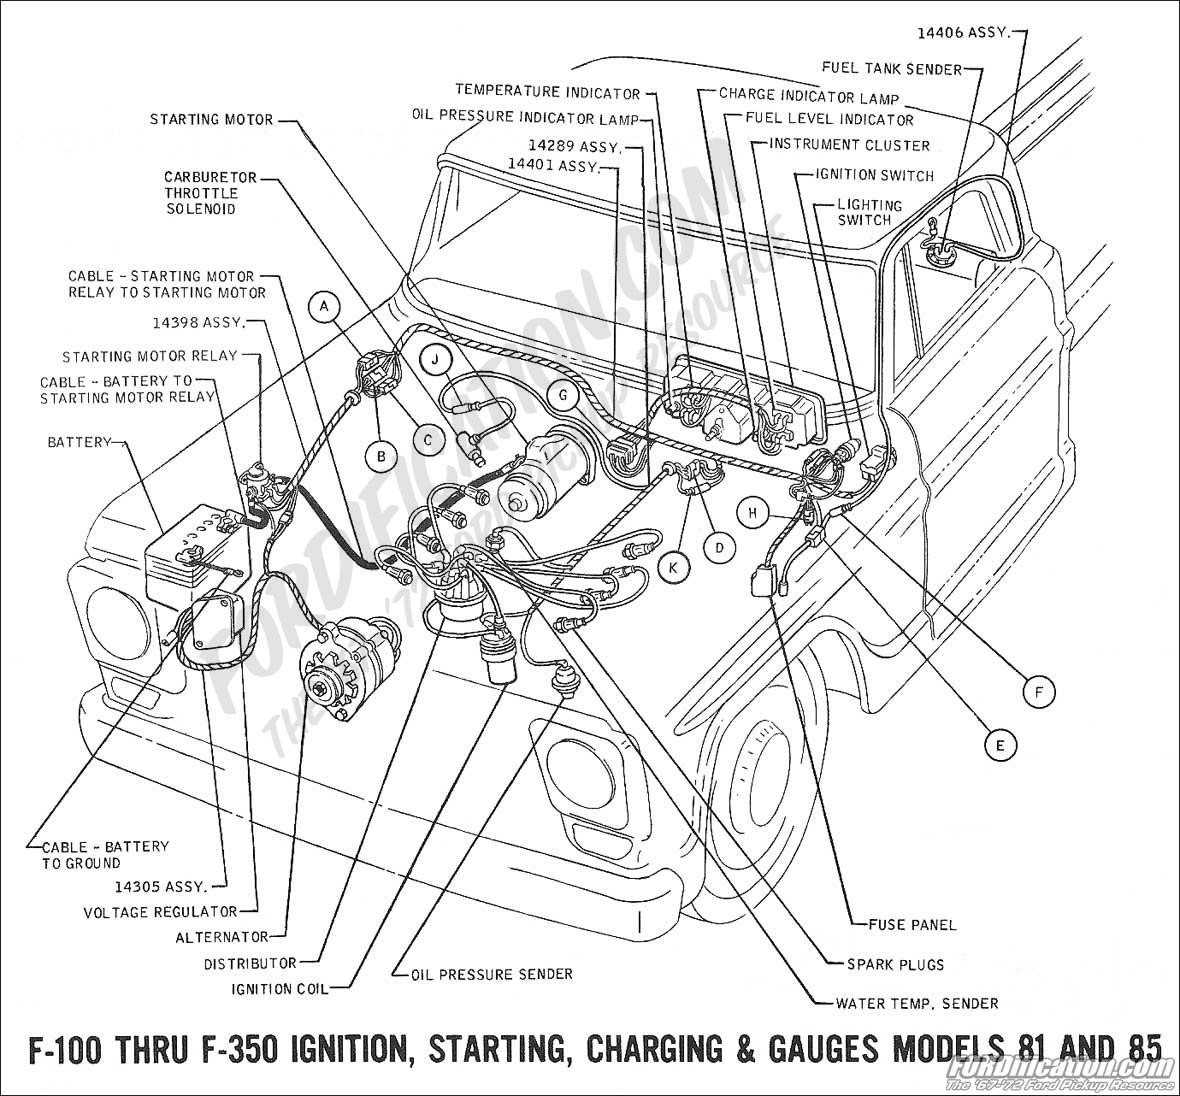 wiring 1969charging ford truck technical drawings and schematics section h wiring 1971 ford f100 wiring diagram at webbmarketing.co